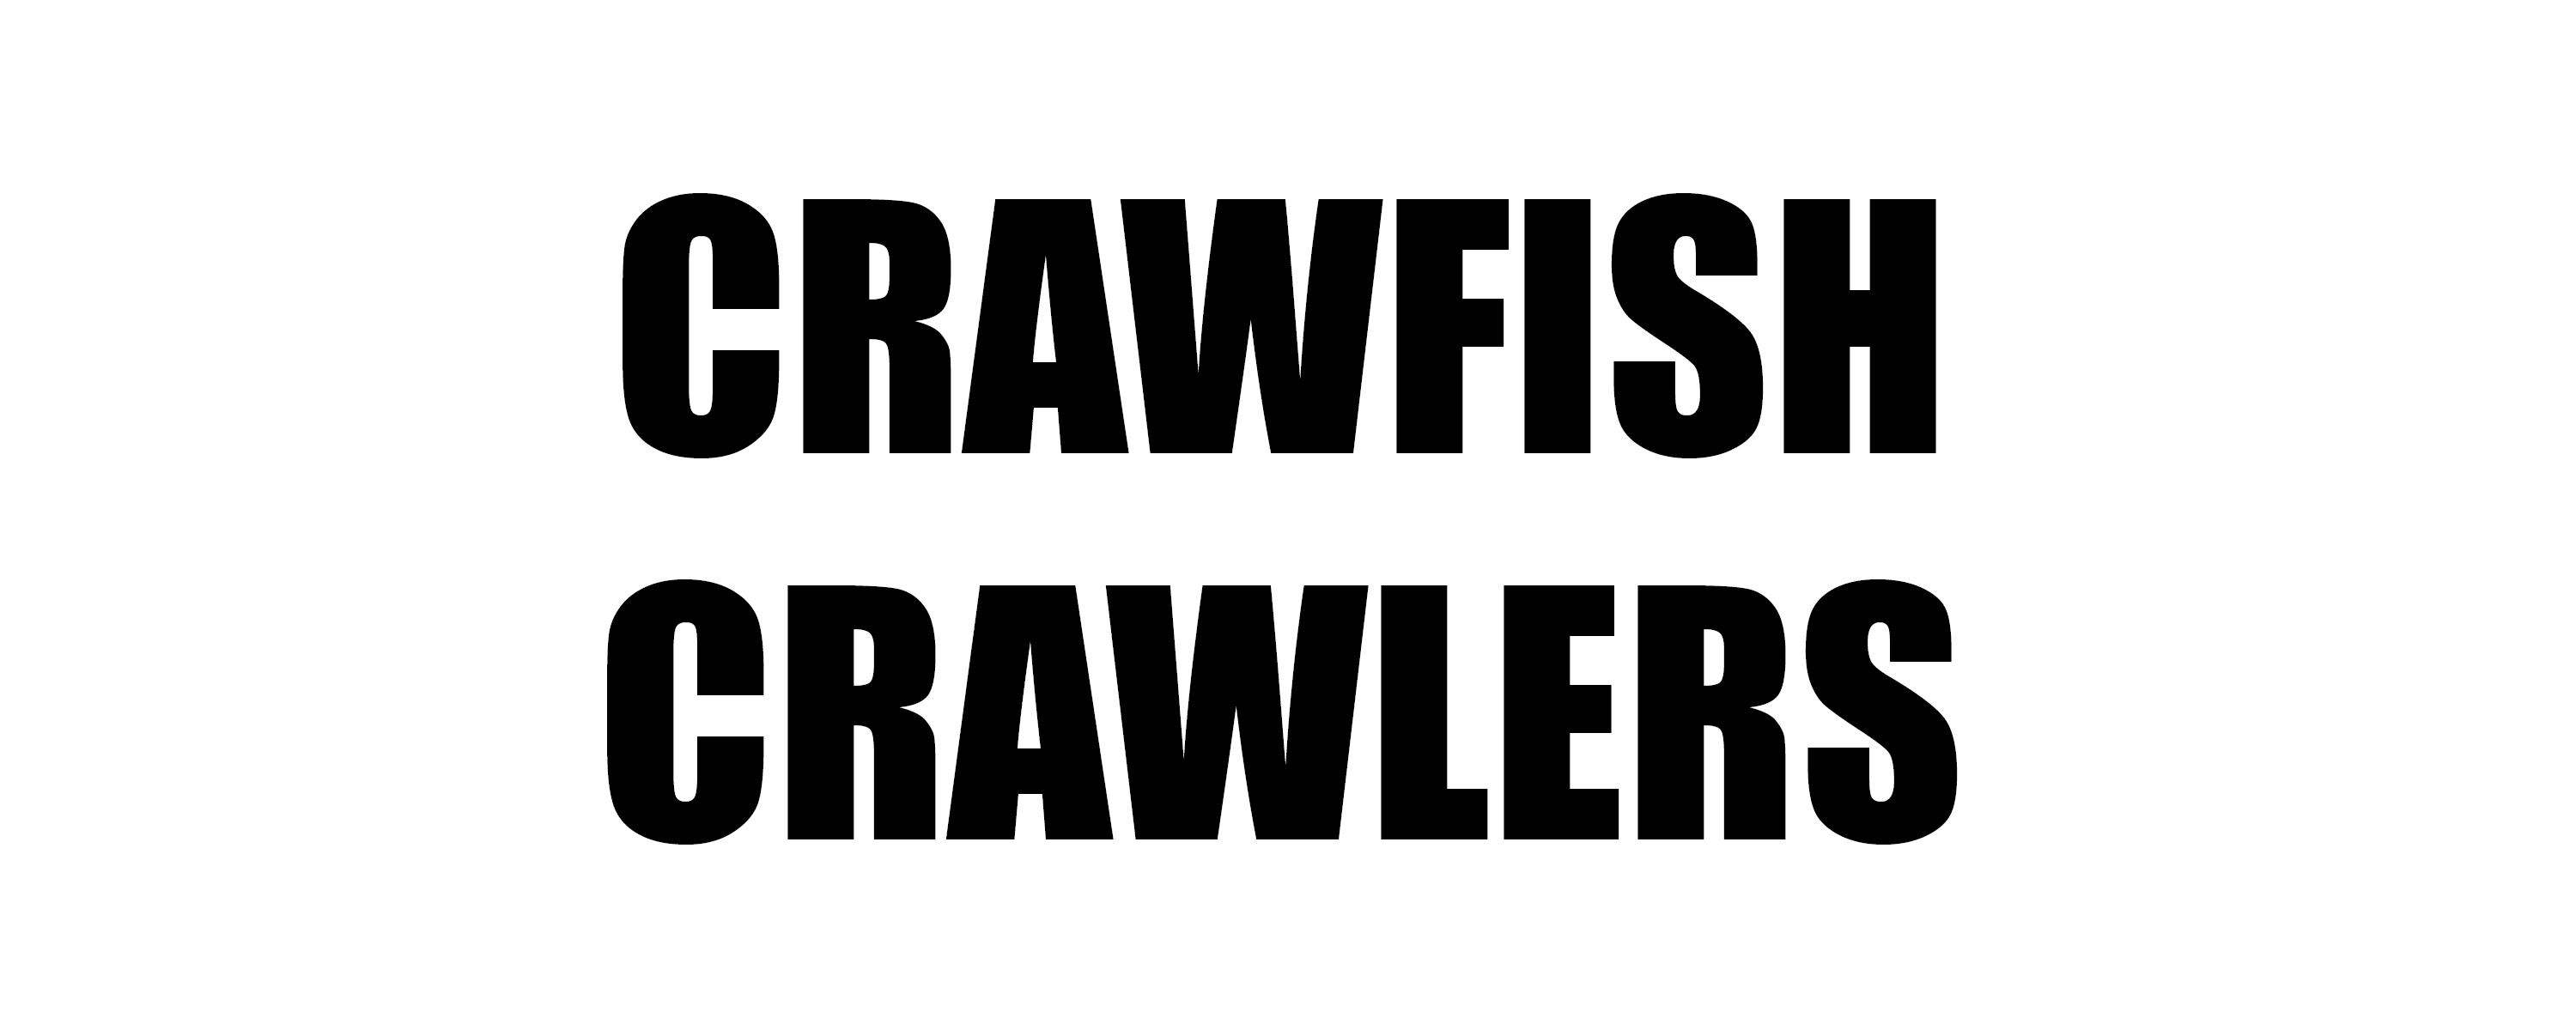 Crawfish Crawlers